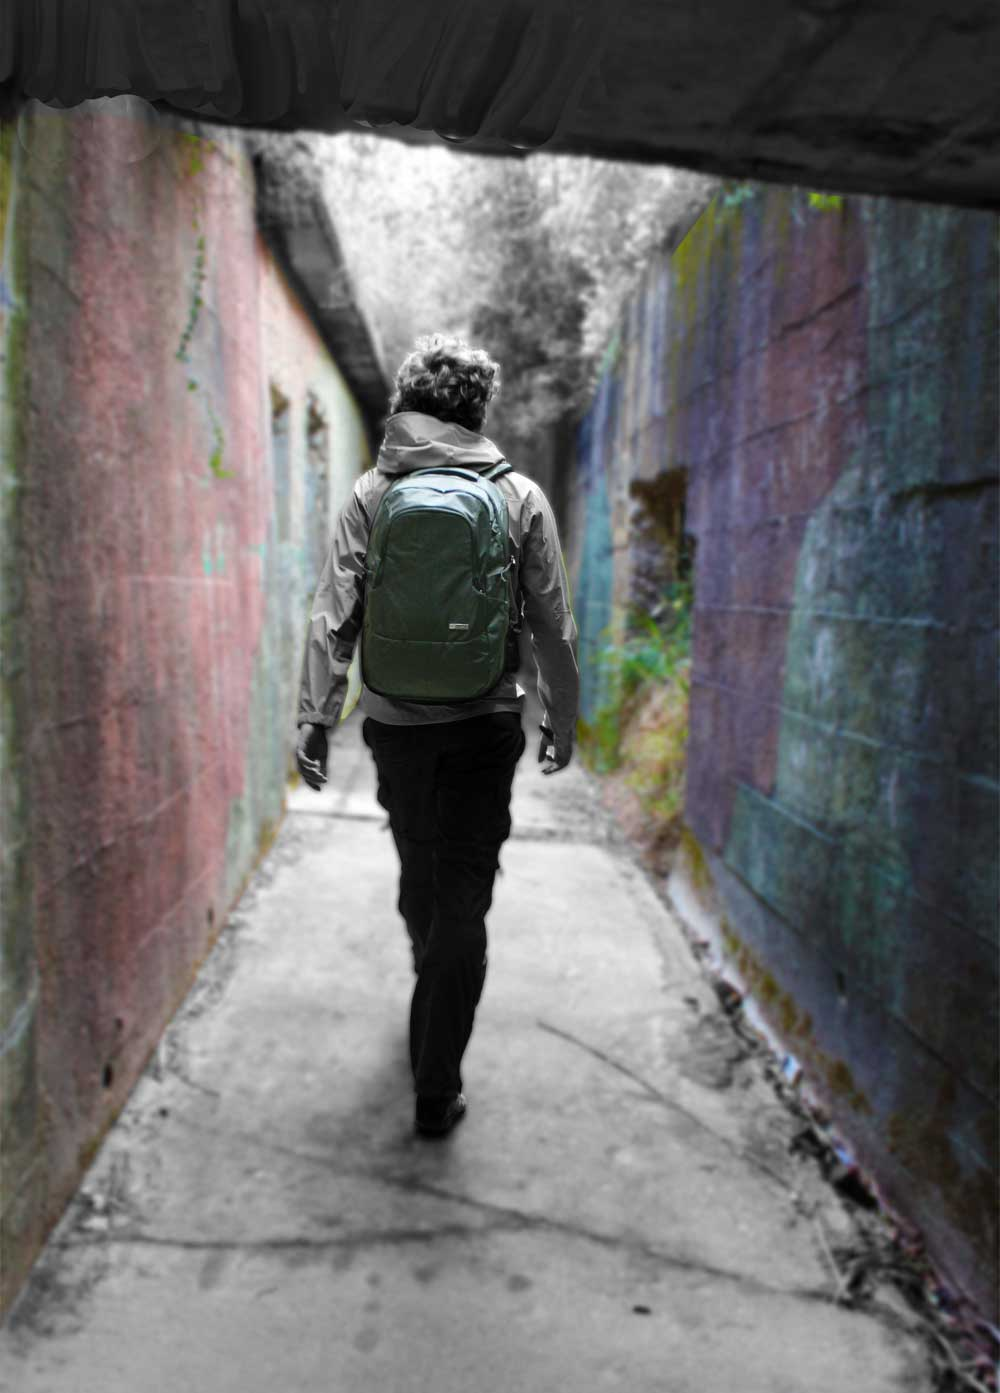 Young-man-walking-down-alley-with-pacsafe-backpac